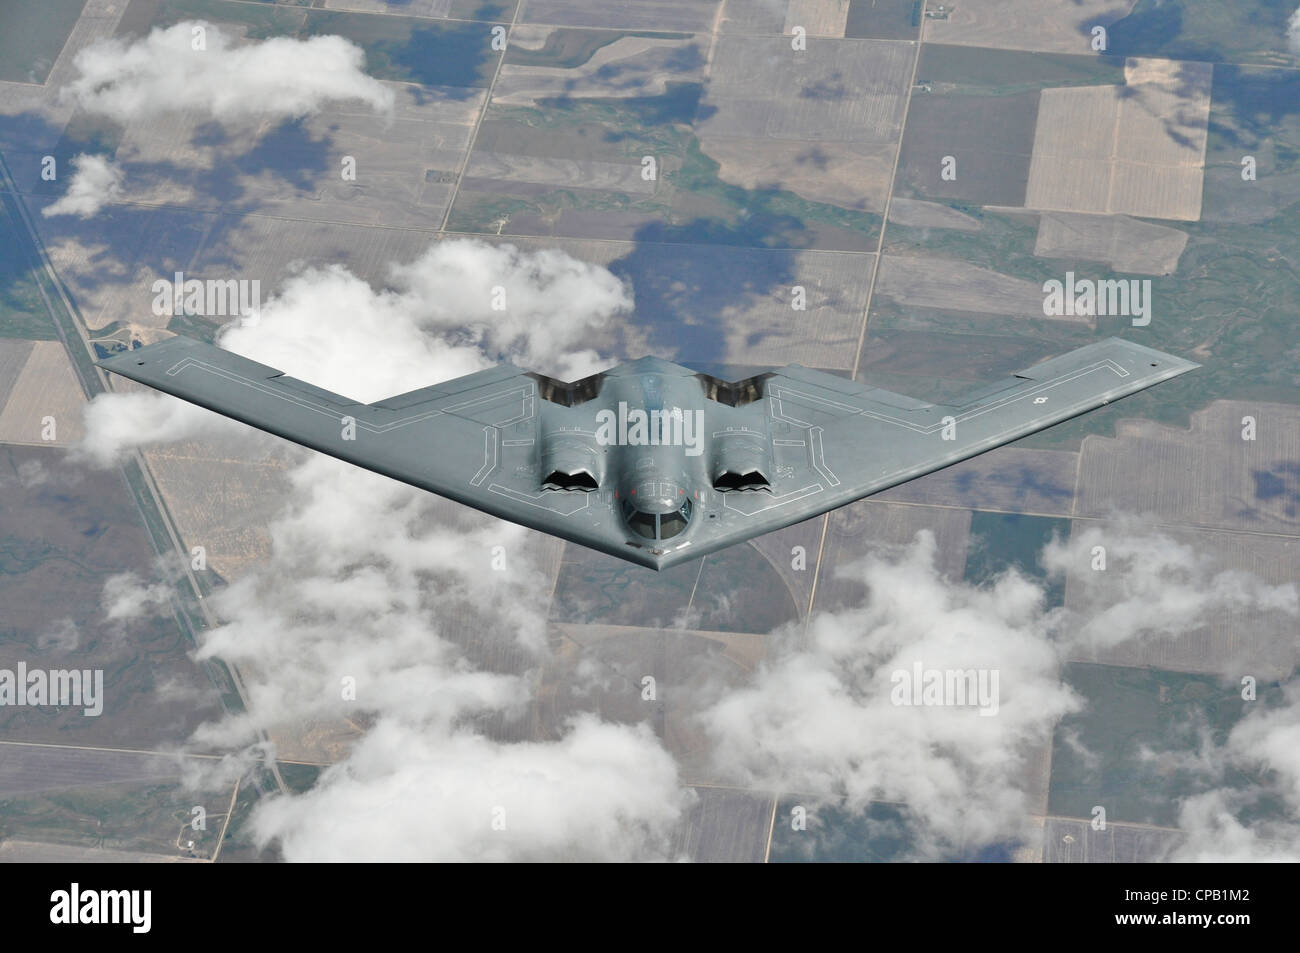 A B 2 Stealth Bomber Stock Photos & A B 2 Stealth Bomber